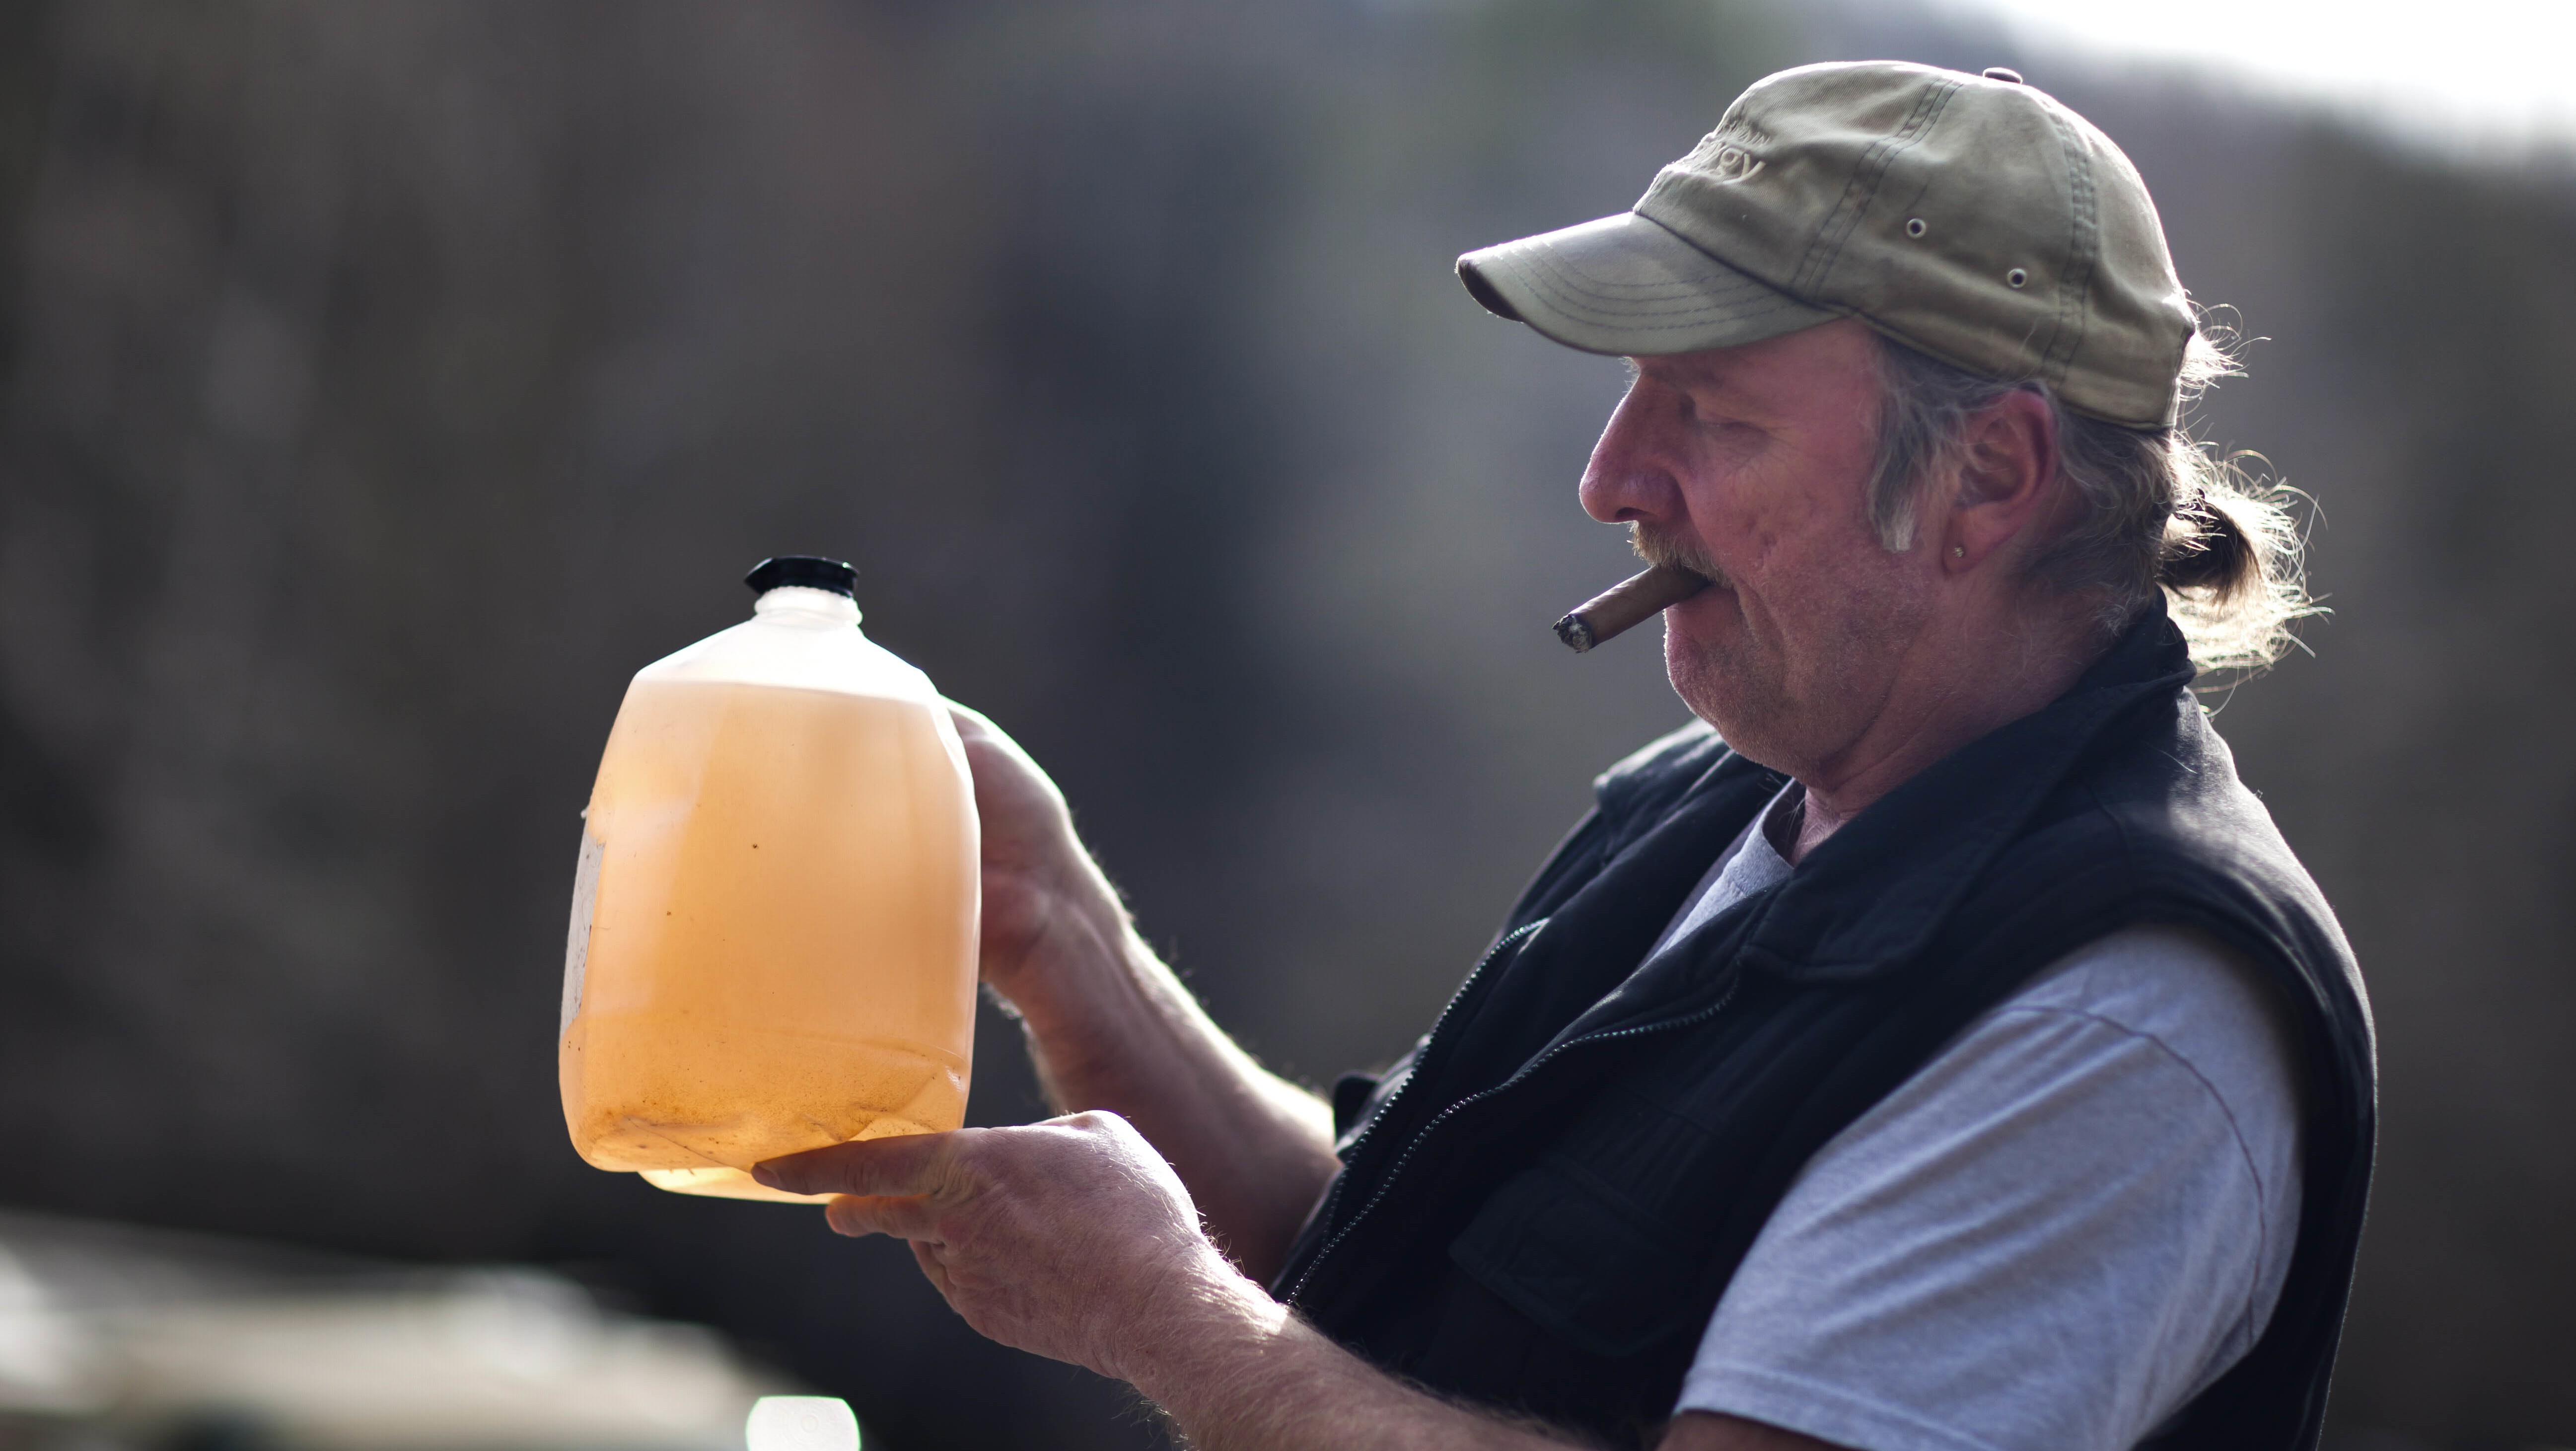 The Company Responsible for Poisoning a Pennsylvania Town's Water Will Pay Families $4.2M